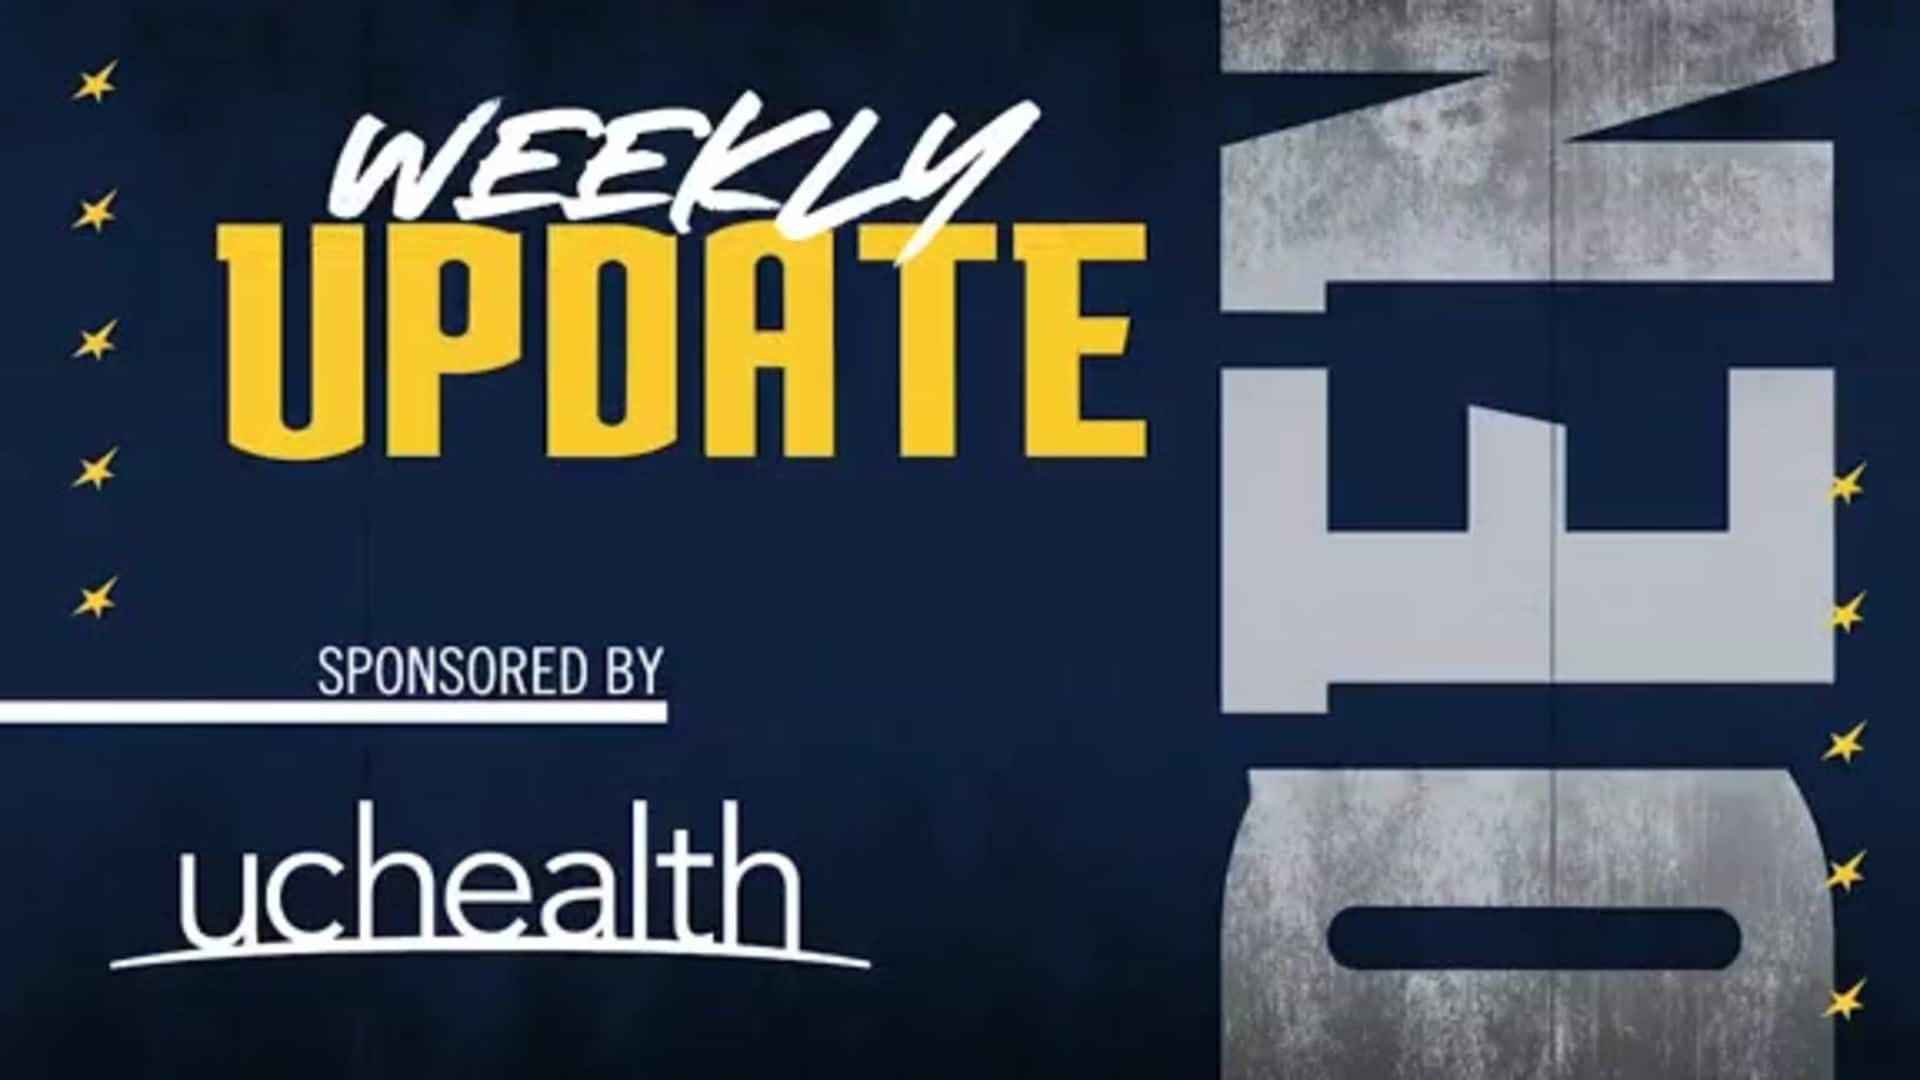 UCHealth Weekly Update | January 2